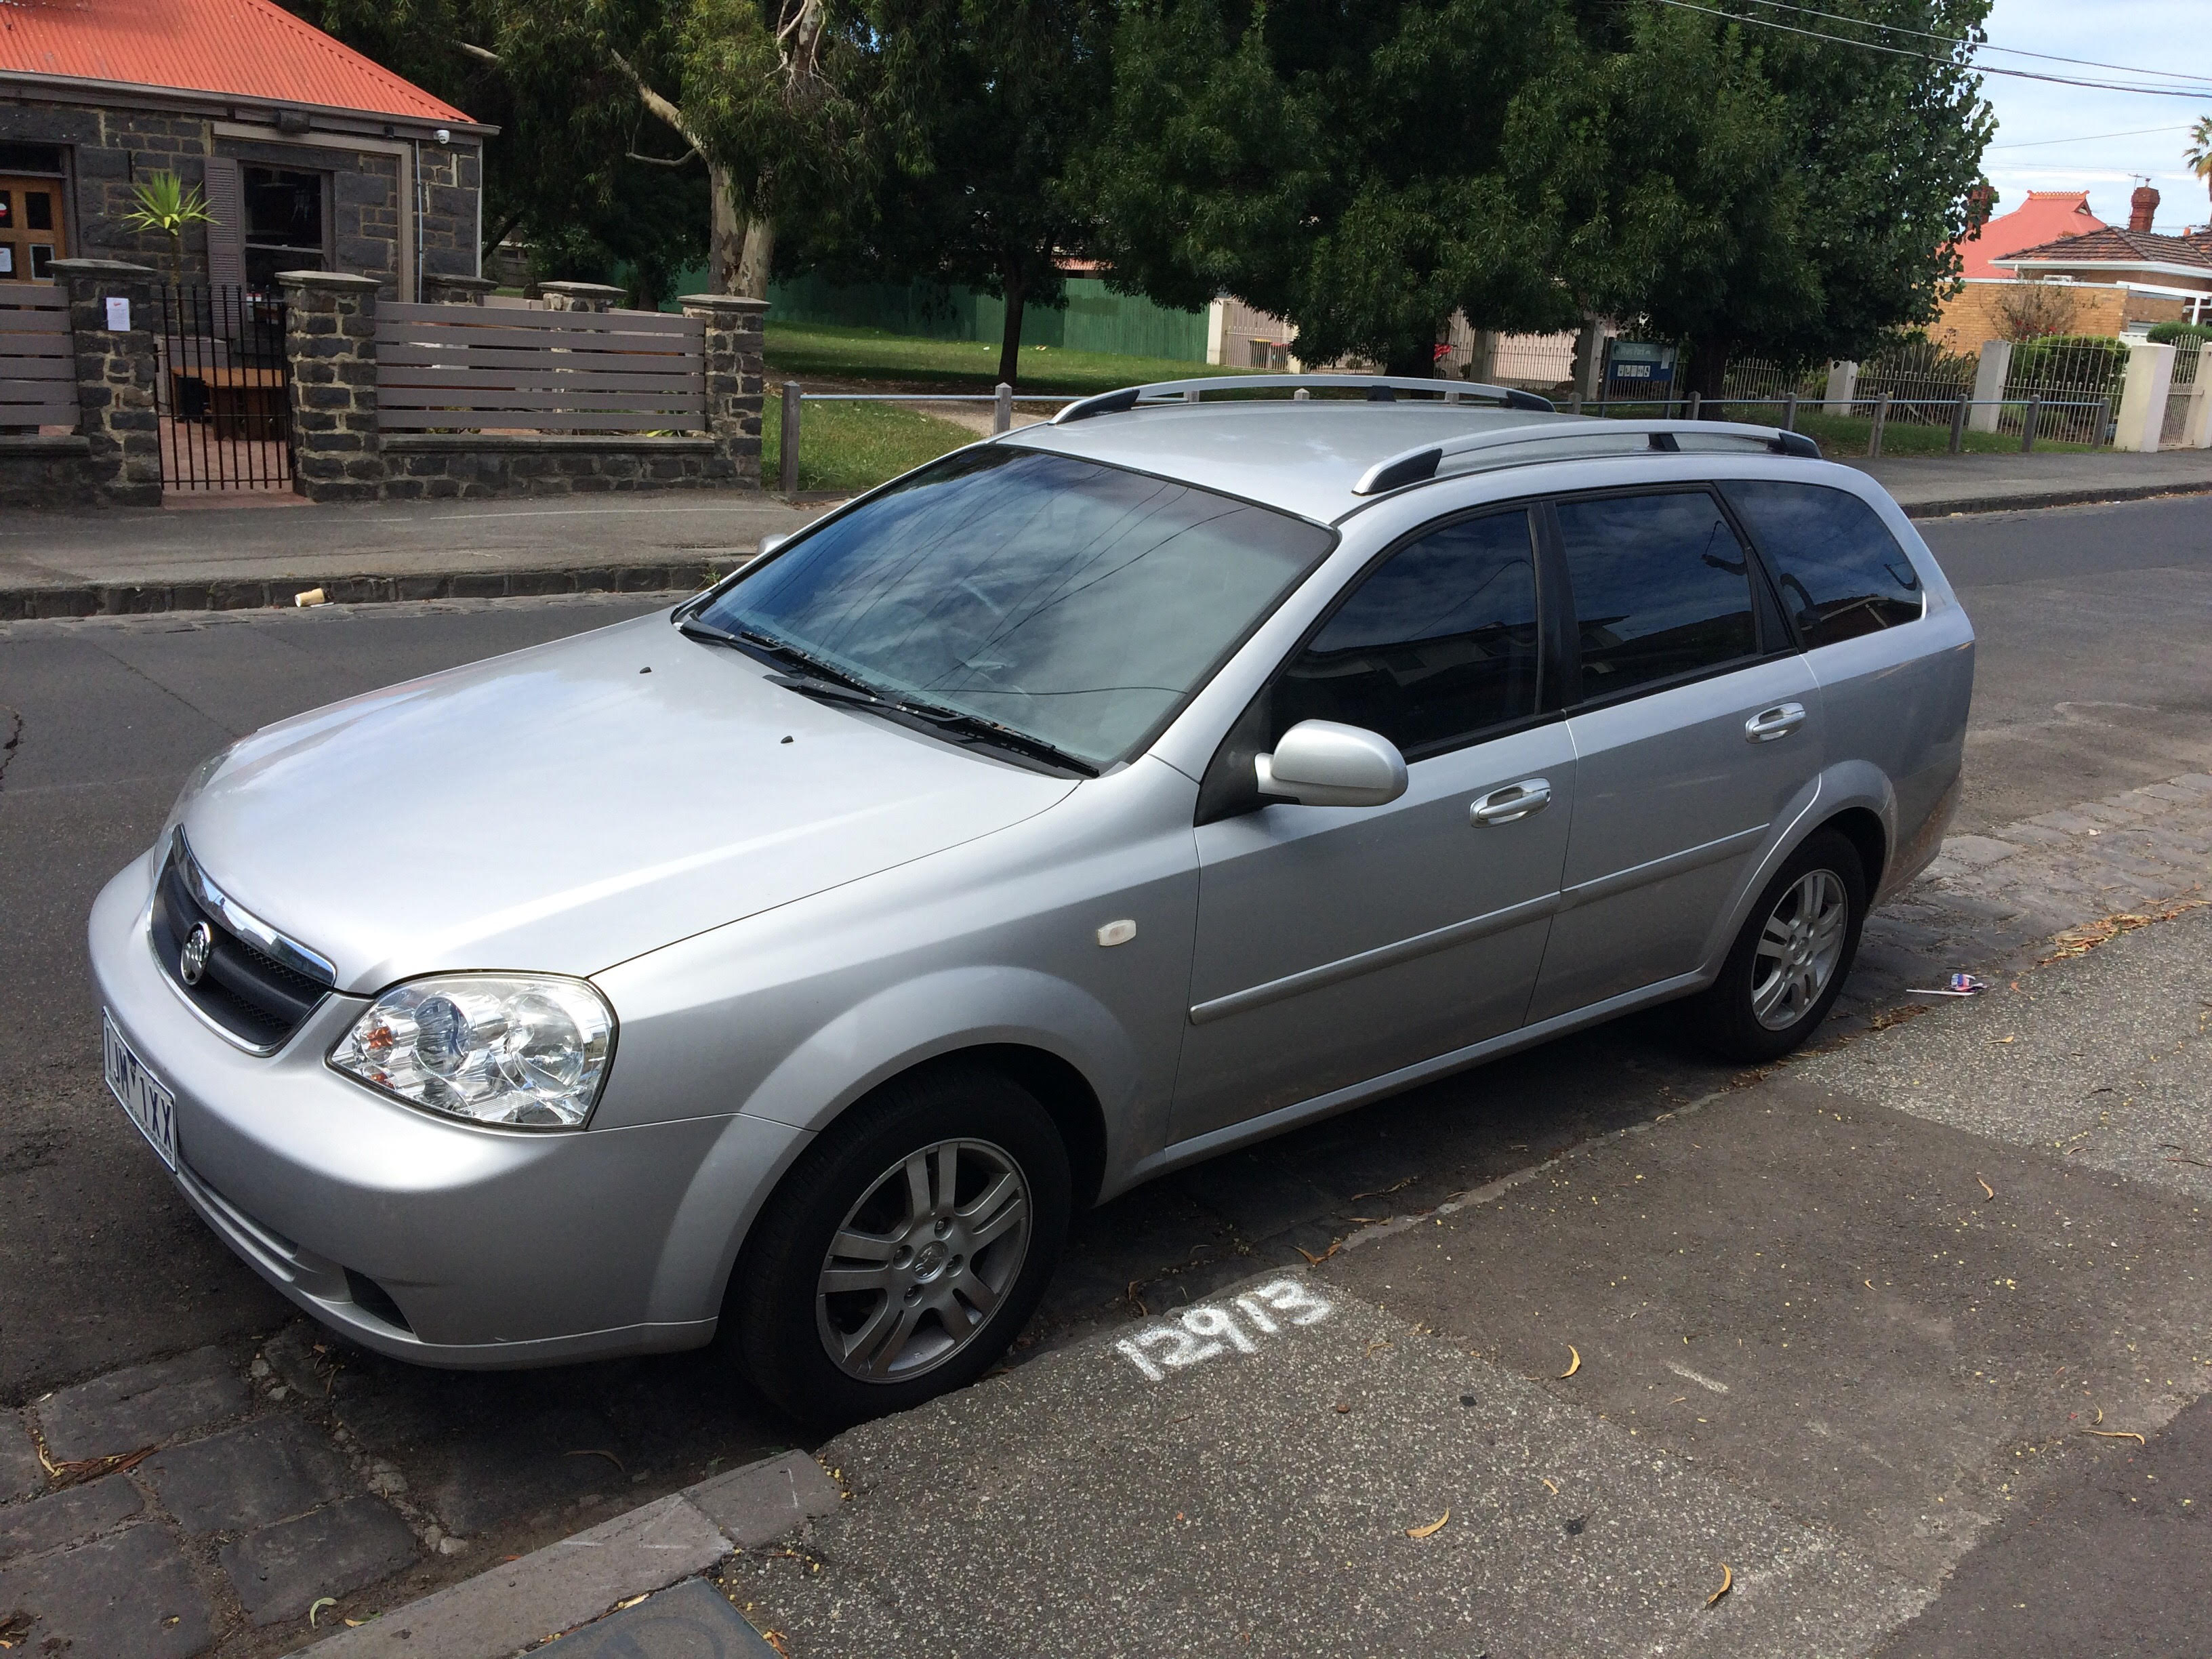 Picture of Junbin's 2006 Holden Viva